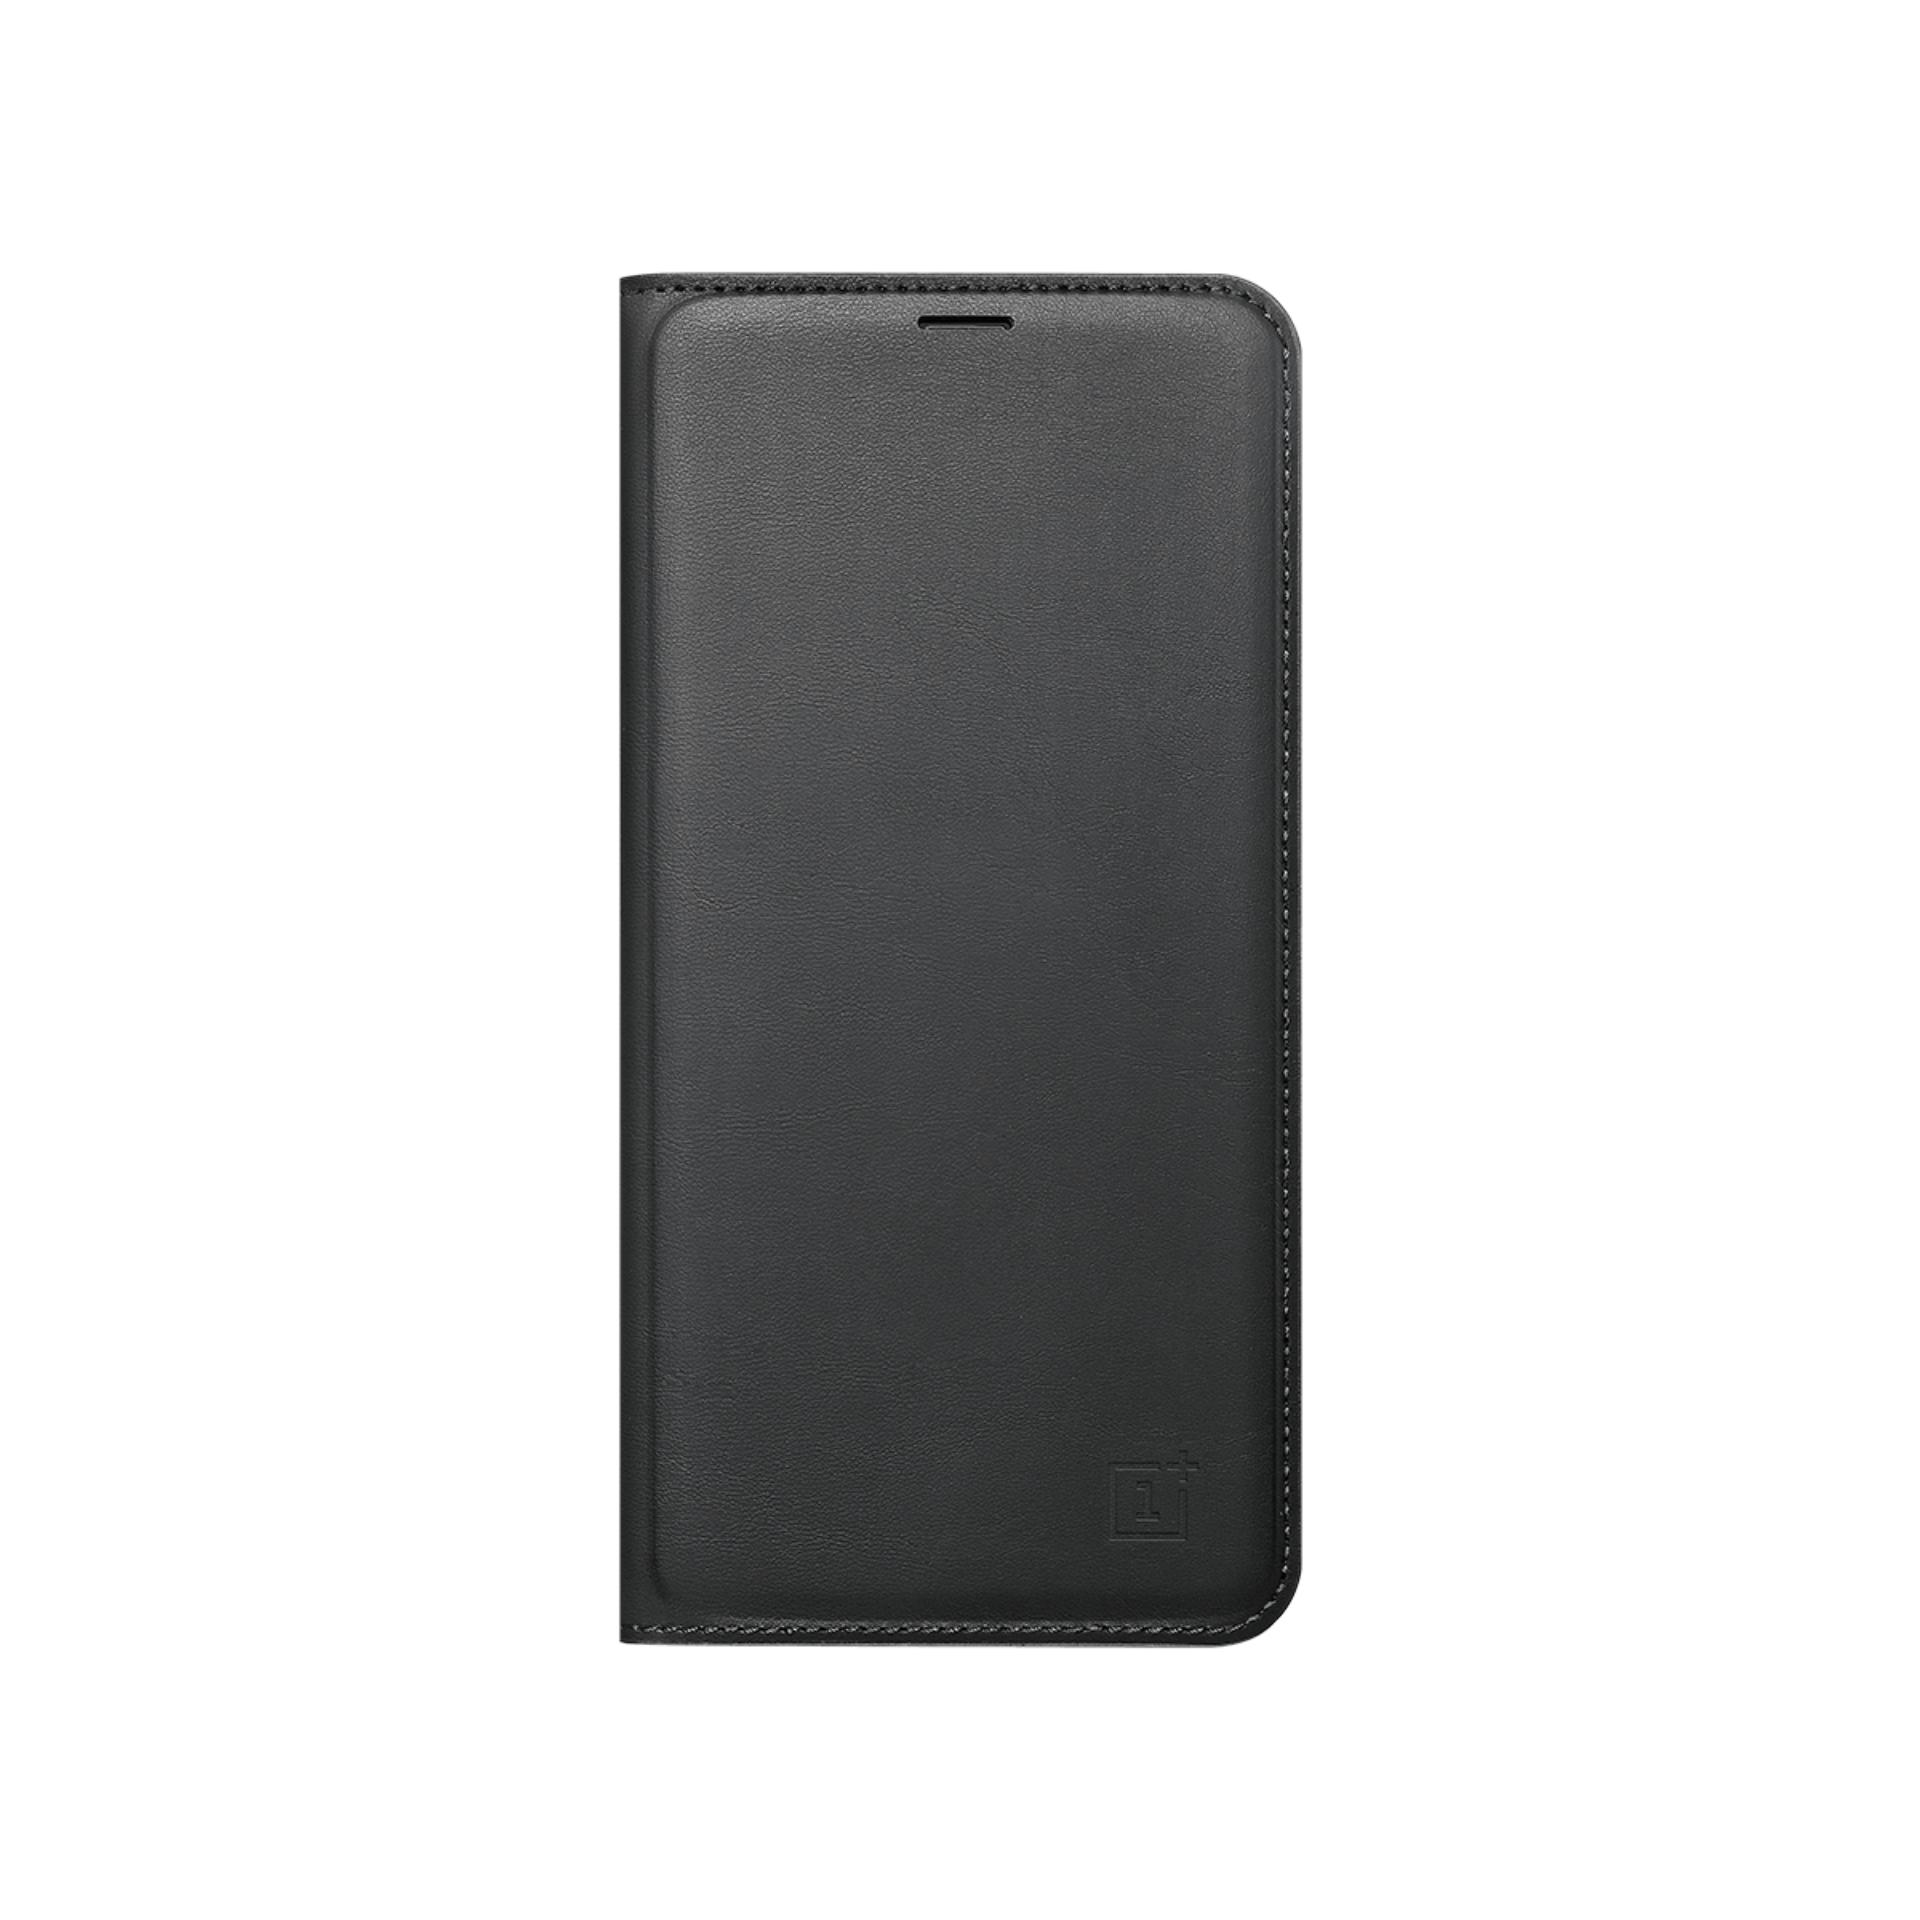 Compare Price Oneplus 5T Flip Cover Black Oneplus On Singapore